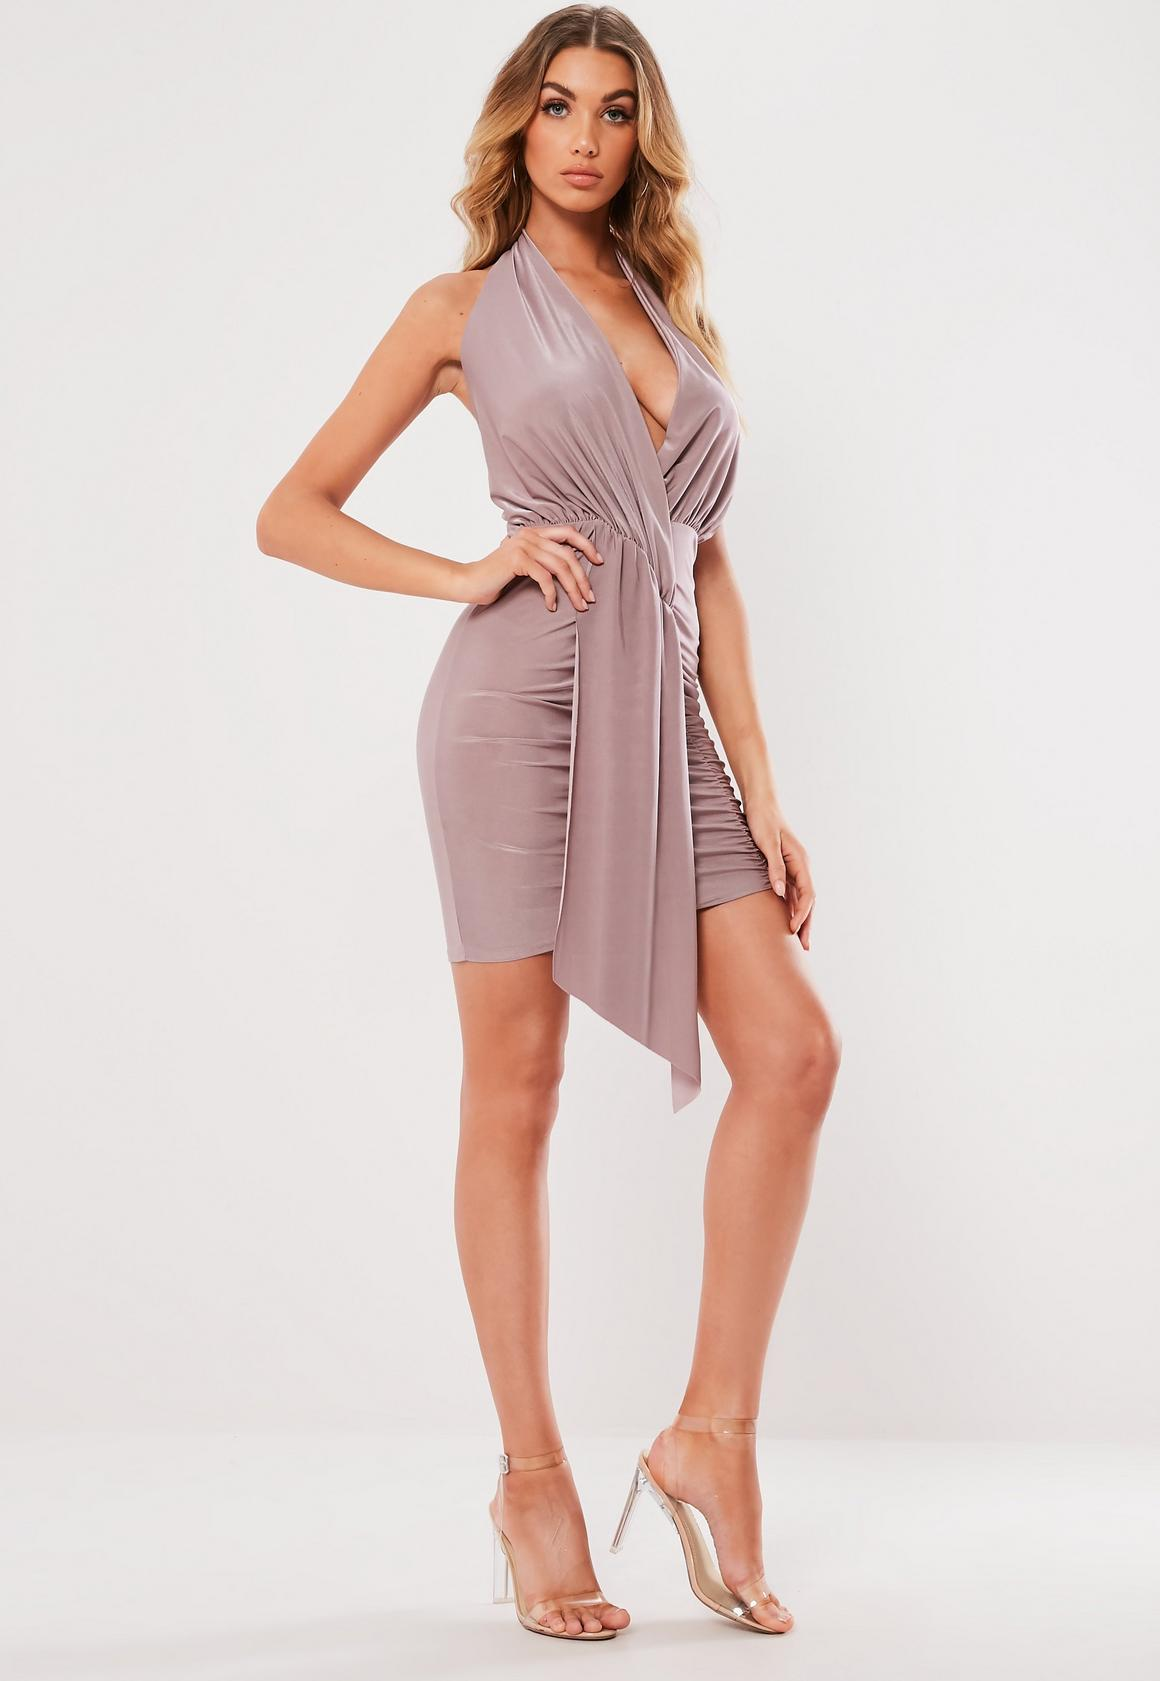 Missguided - robe dos-nu courte tissu drappé lilas - 3